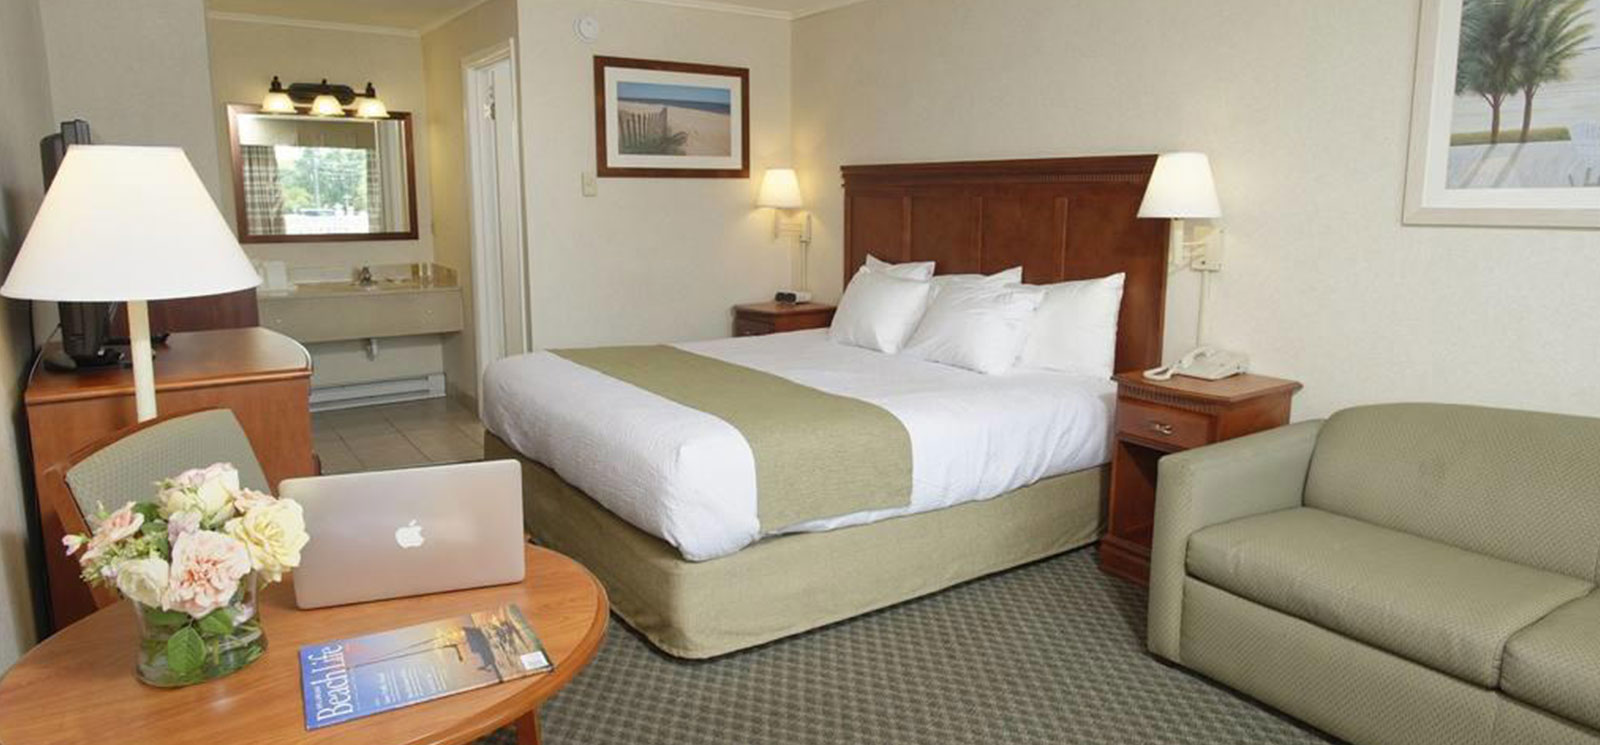 Stay 5 Nights and Save Special from The Oceanus Rehoboth Beach, Delaware